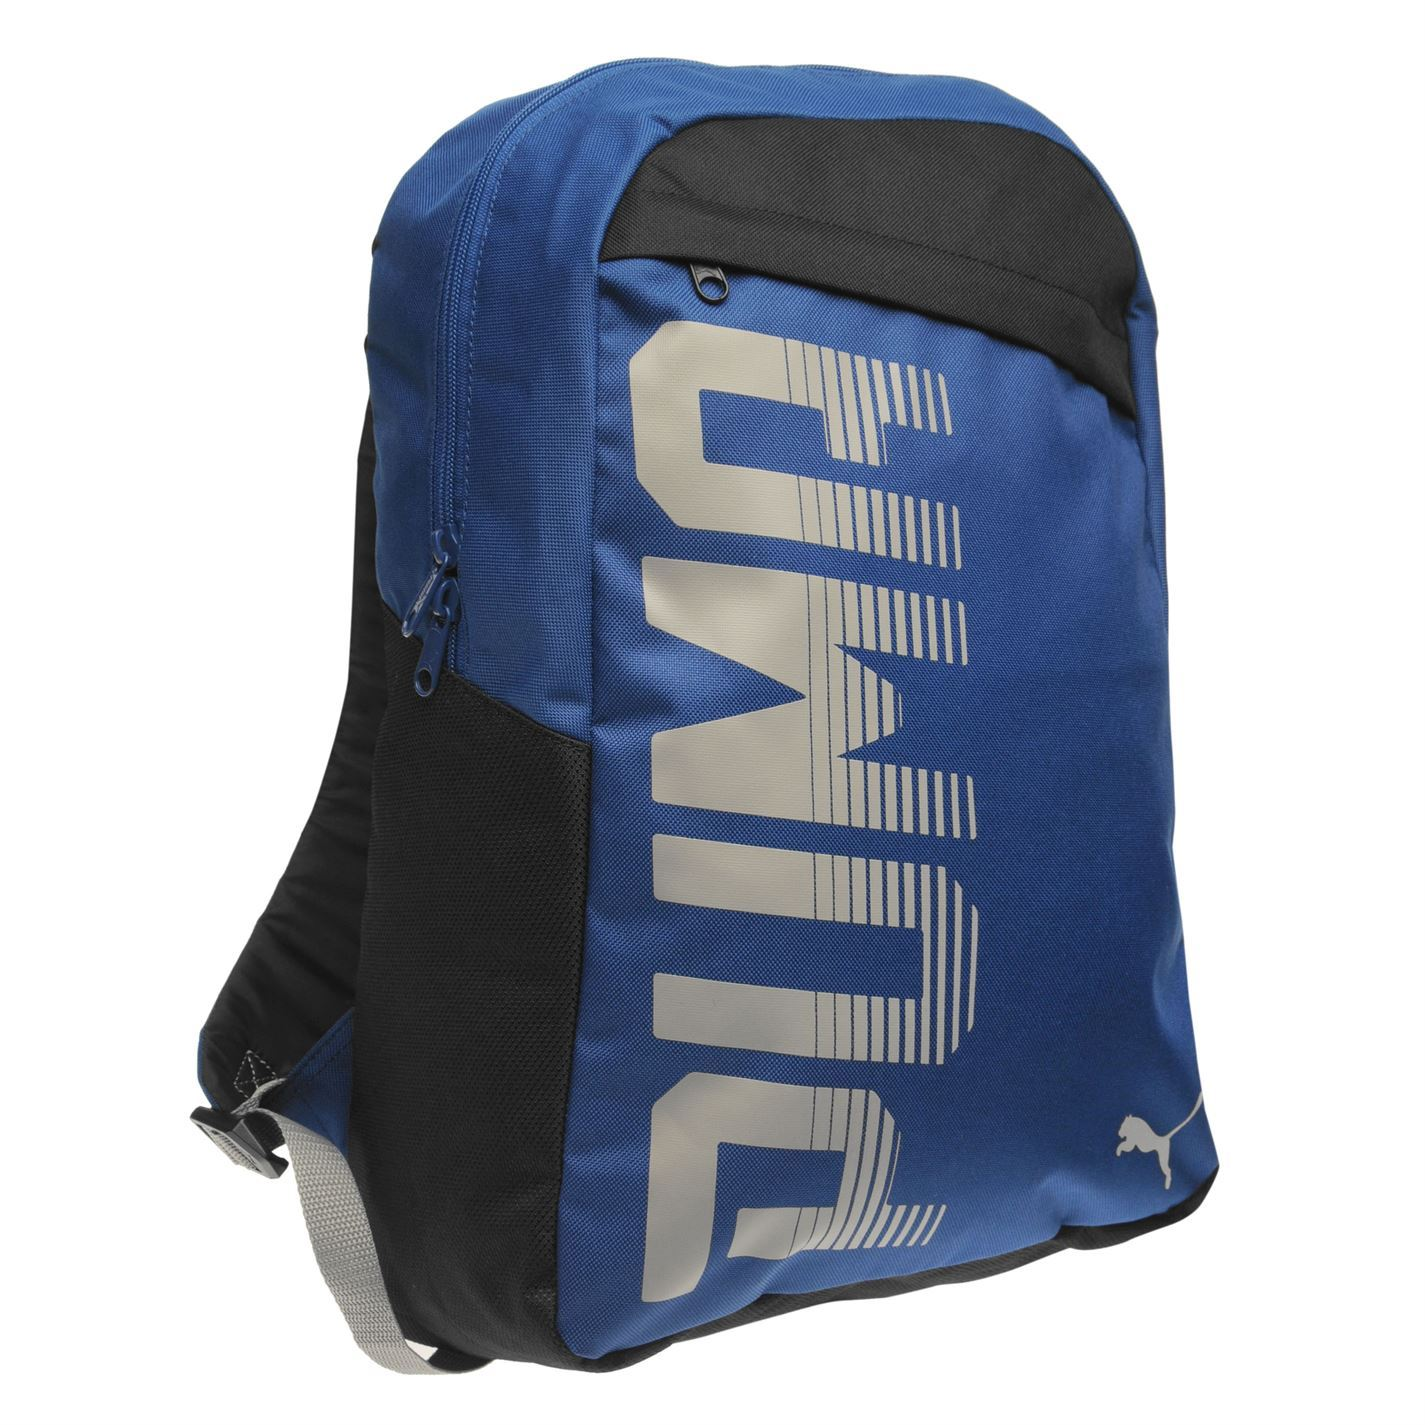 3d20009389 Details about Puma Pioneer Backpack Blue Sports Bag Holdall Rucksack